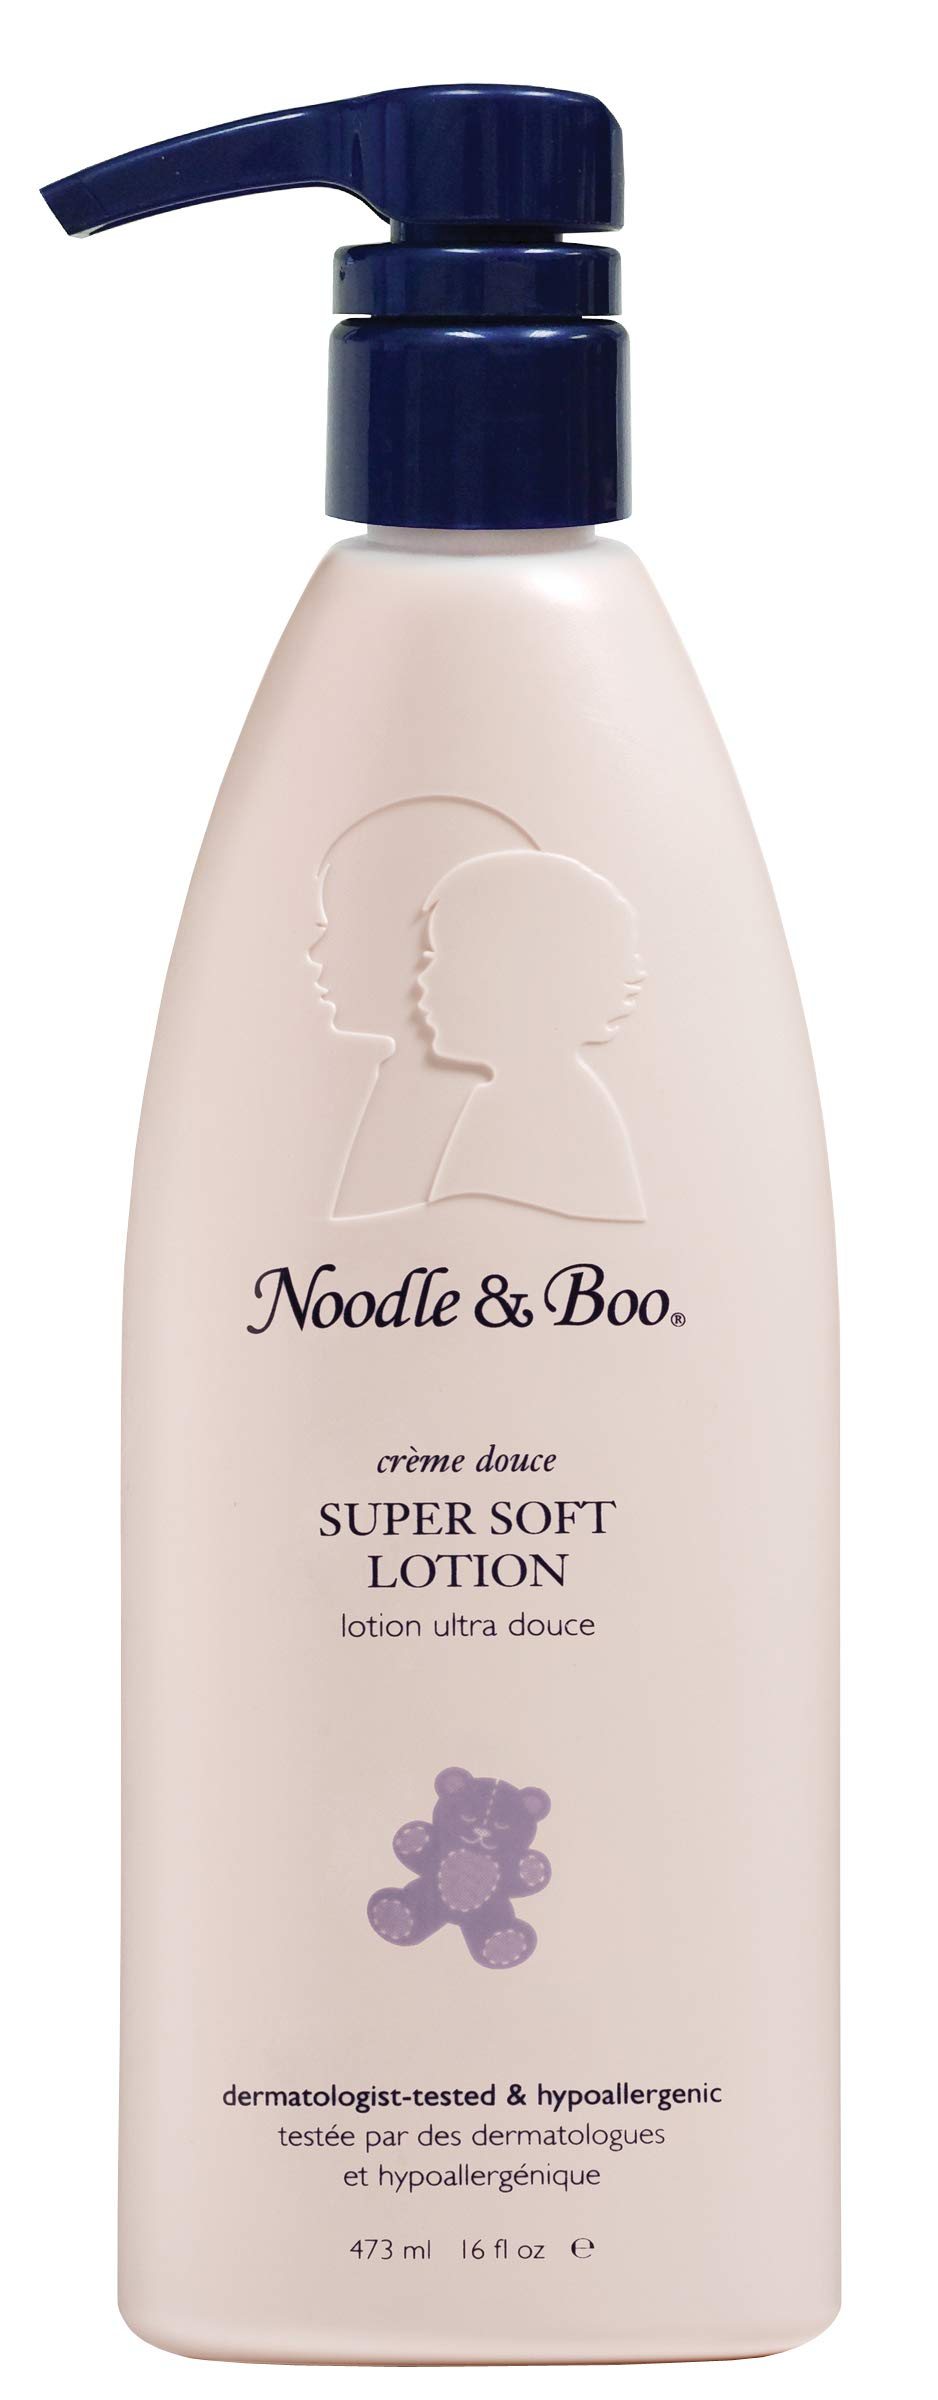 Noodle & Boo Super Soft Moisturizing Lotion for Daily Baby Care, 16 Fl Oz by Noodle & Boo